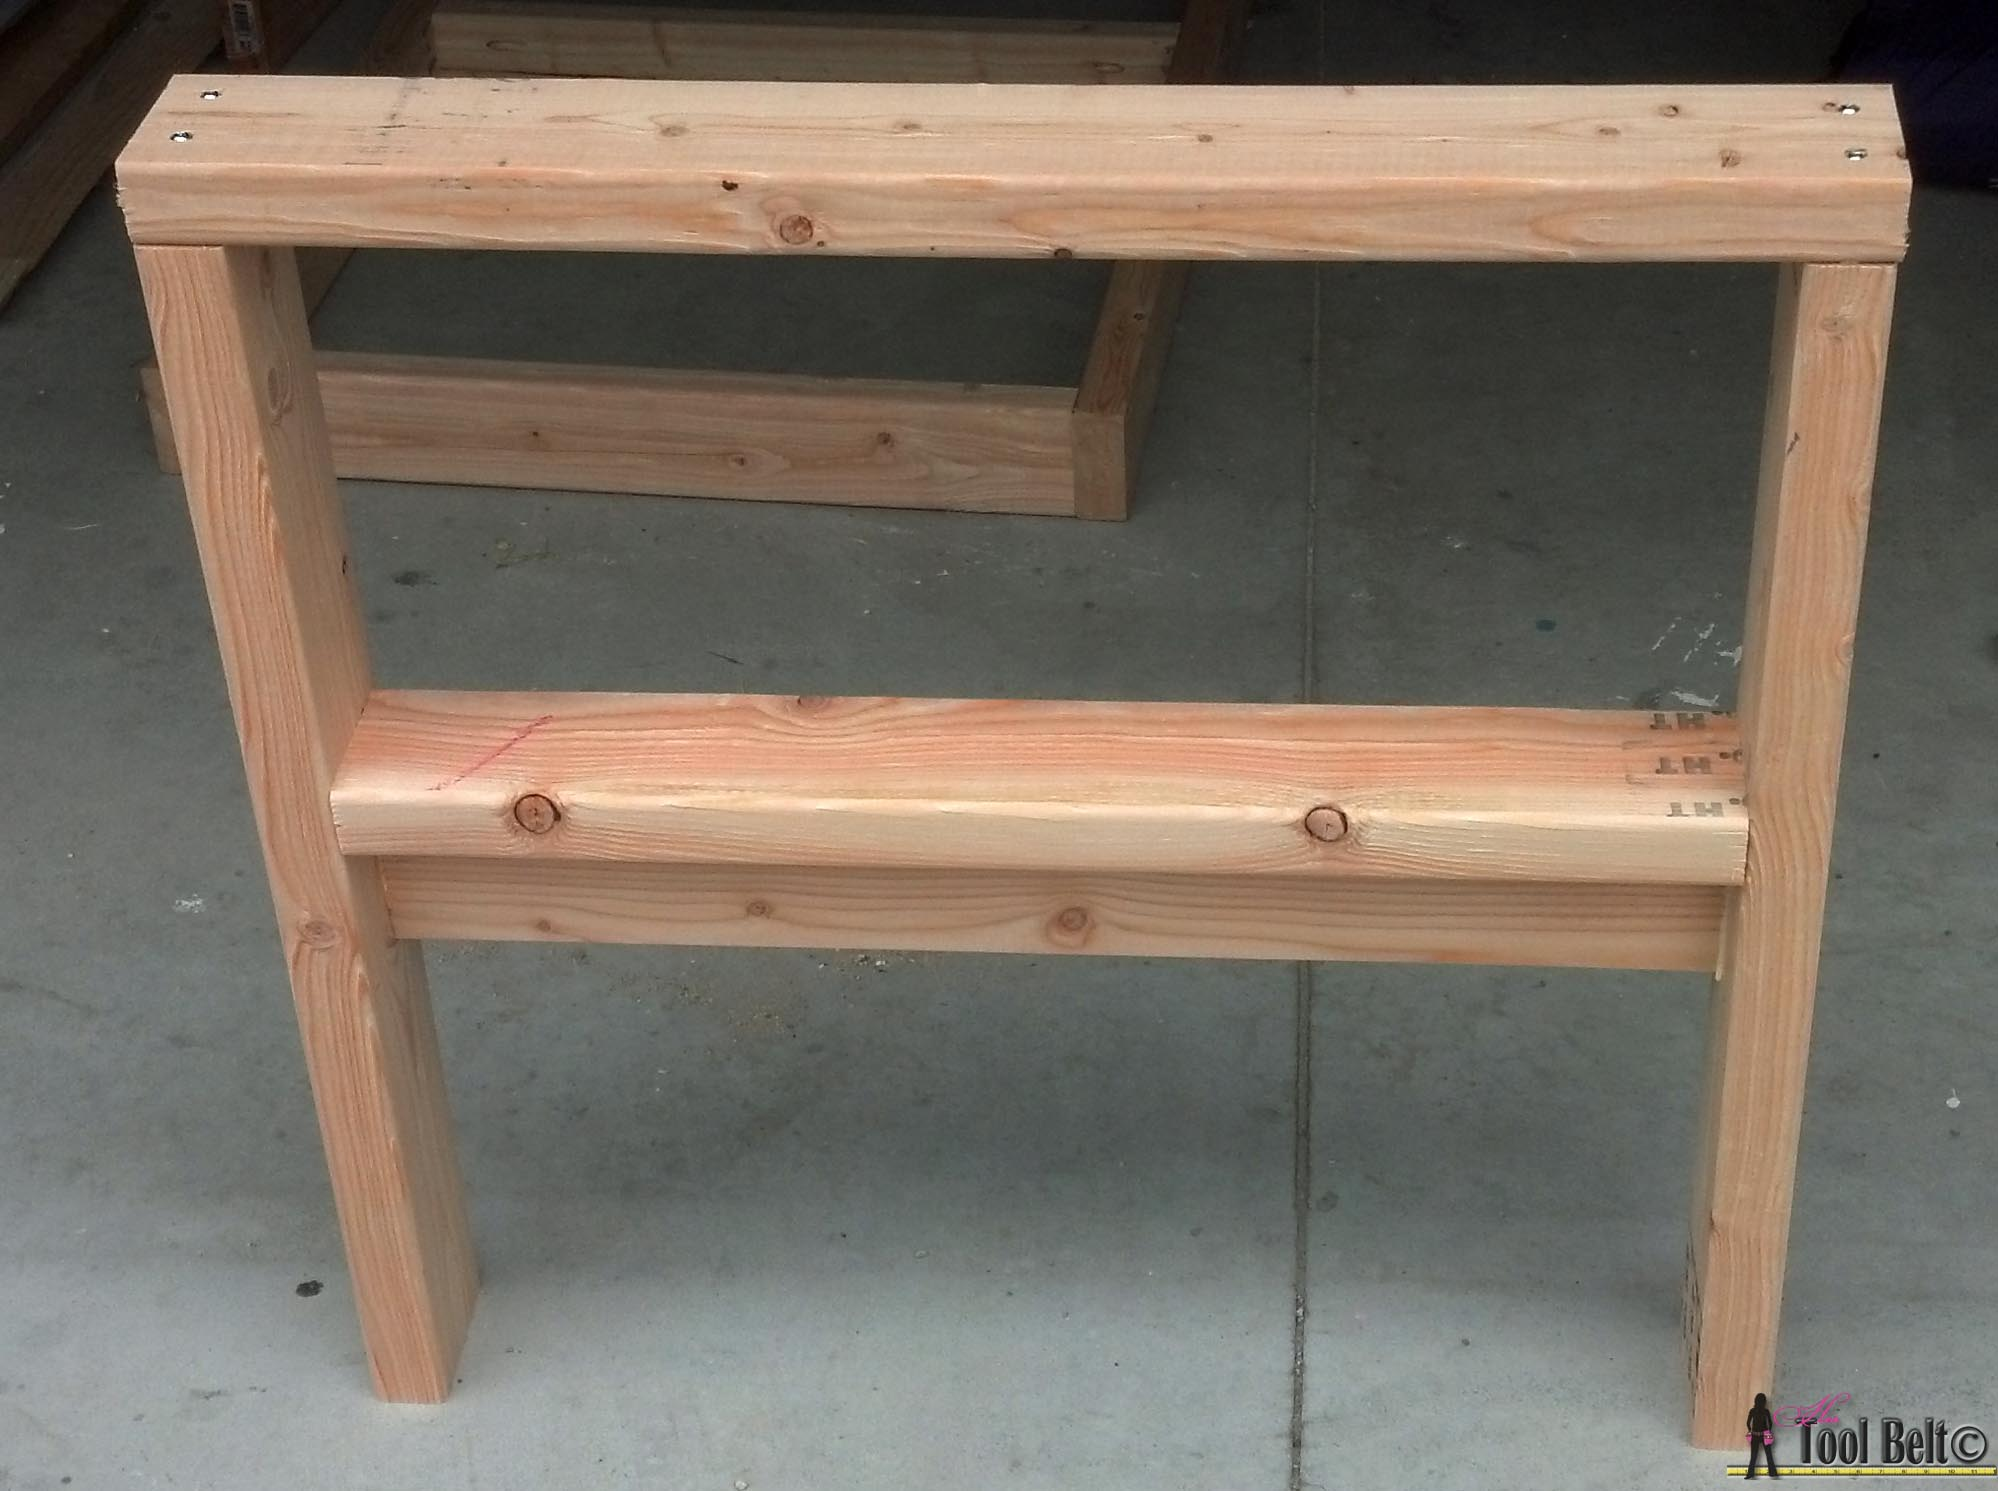 Build your own outdoor seating from 2x4's with these free and easy plans on hertoolbelt.